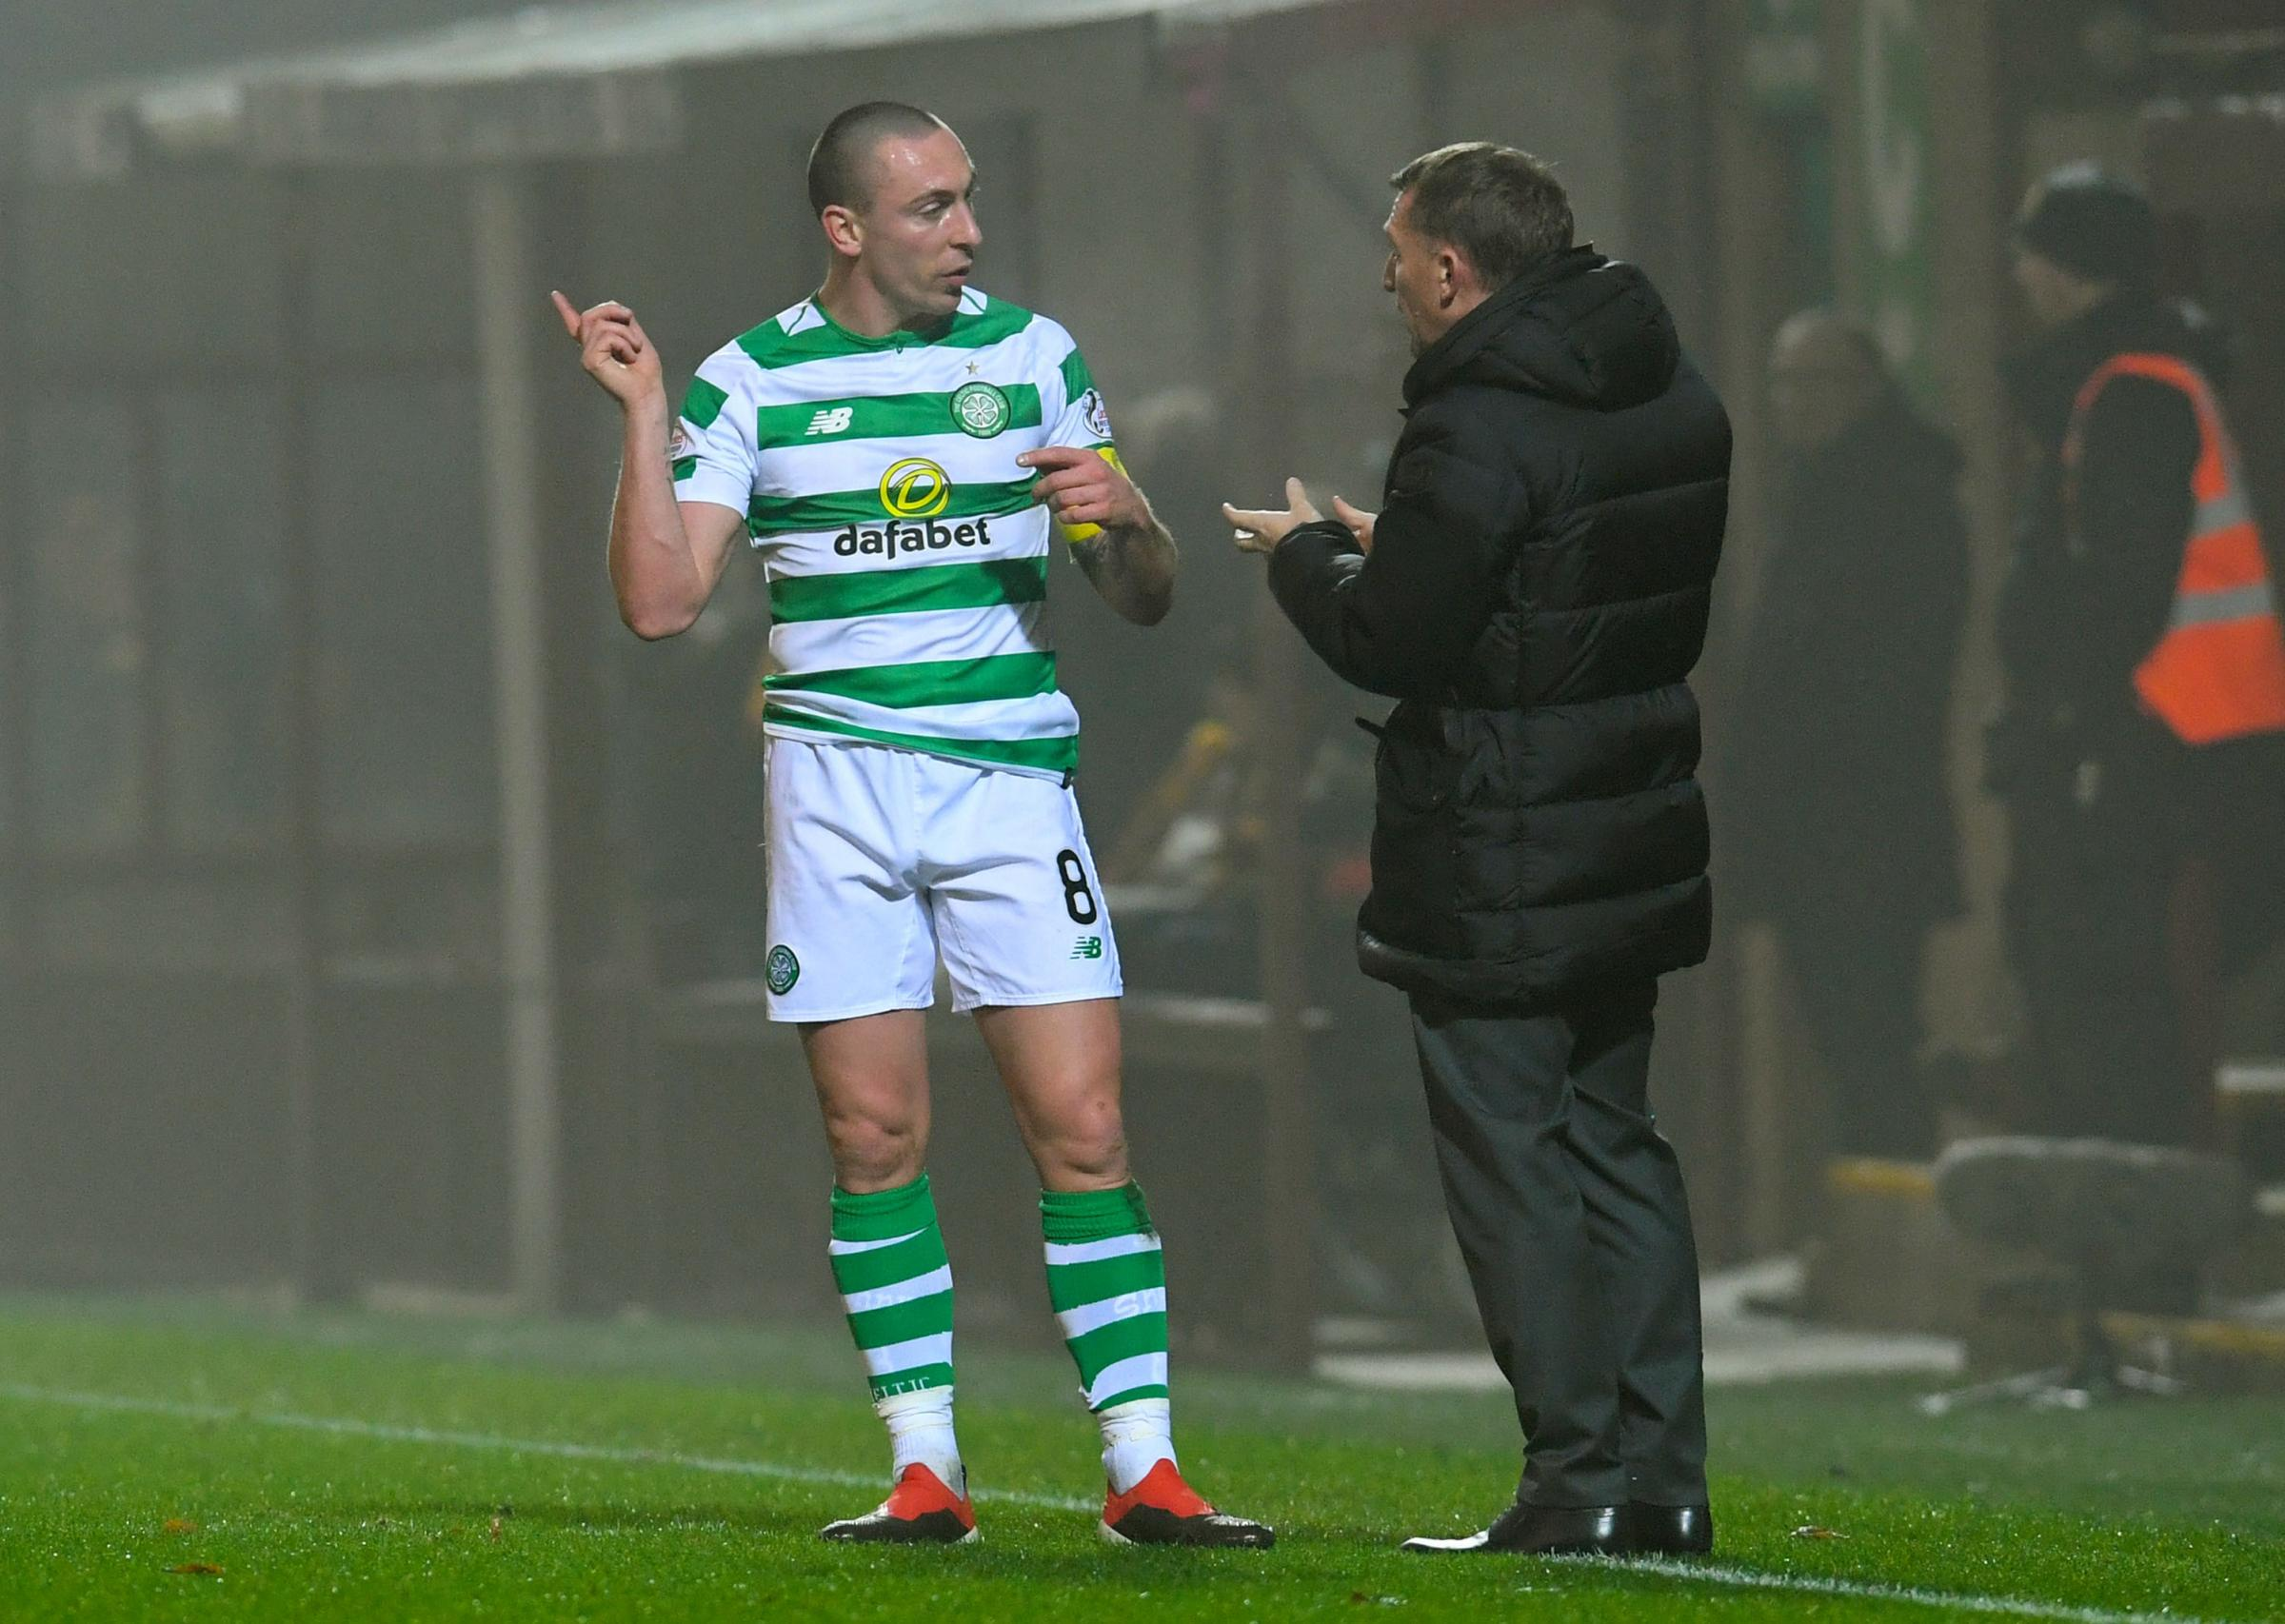 05/12/18 LADBROKES PREMIERSHIP.MOTHERWELL v CELTIC.FIR PARK - MOTHERWELL.Celtic's Scott Brown in discussion with Celtic manager Brendan Rodgers (right).